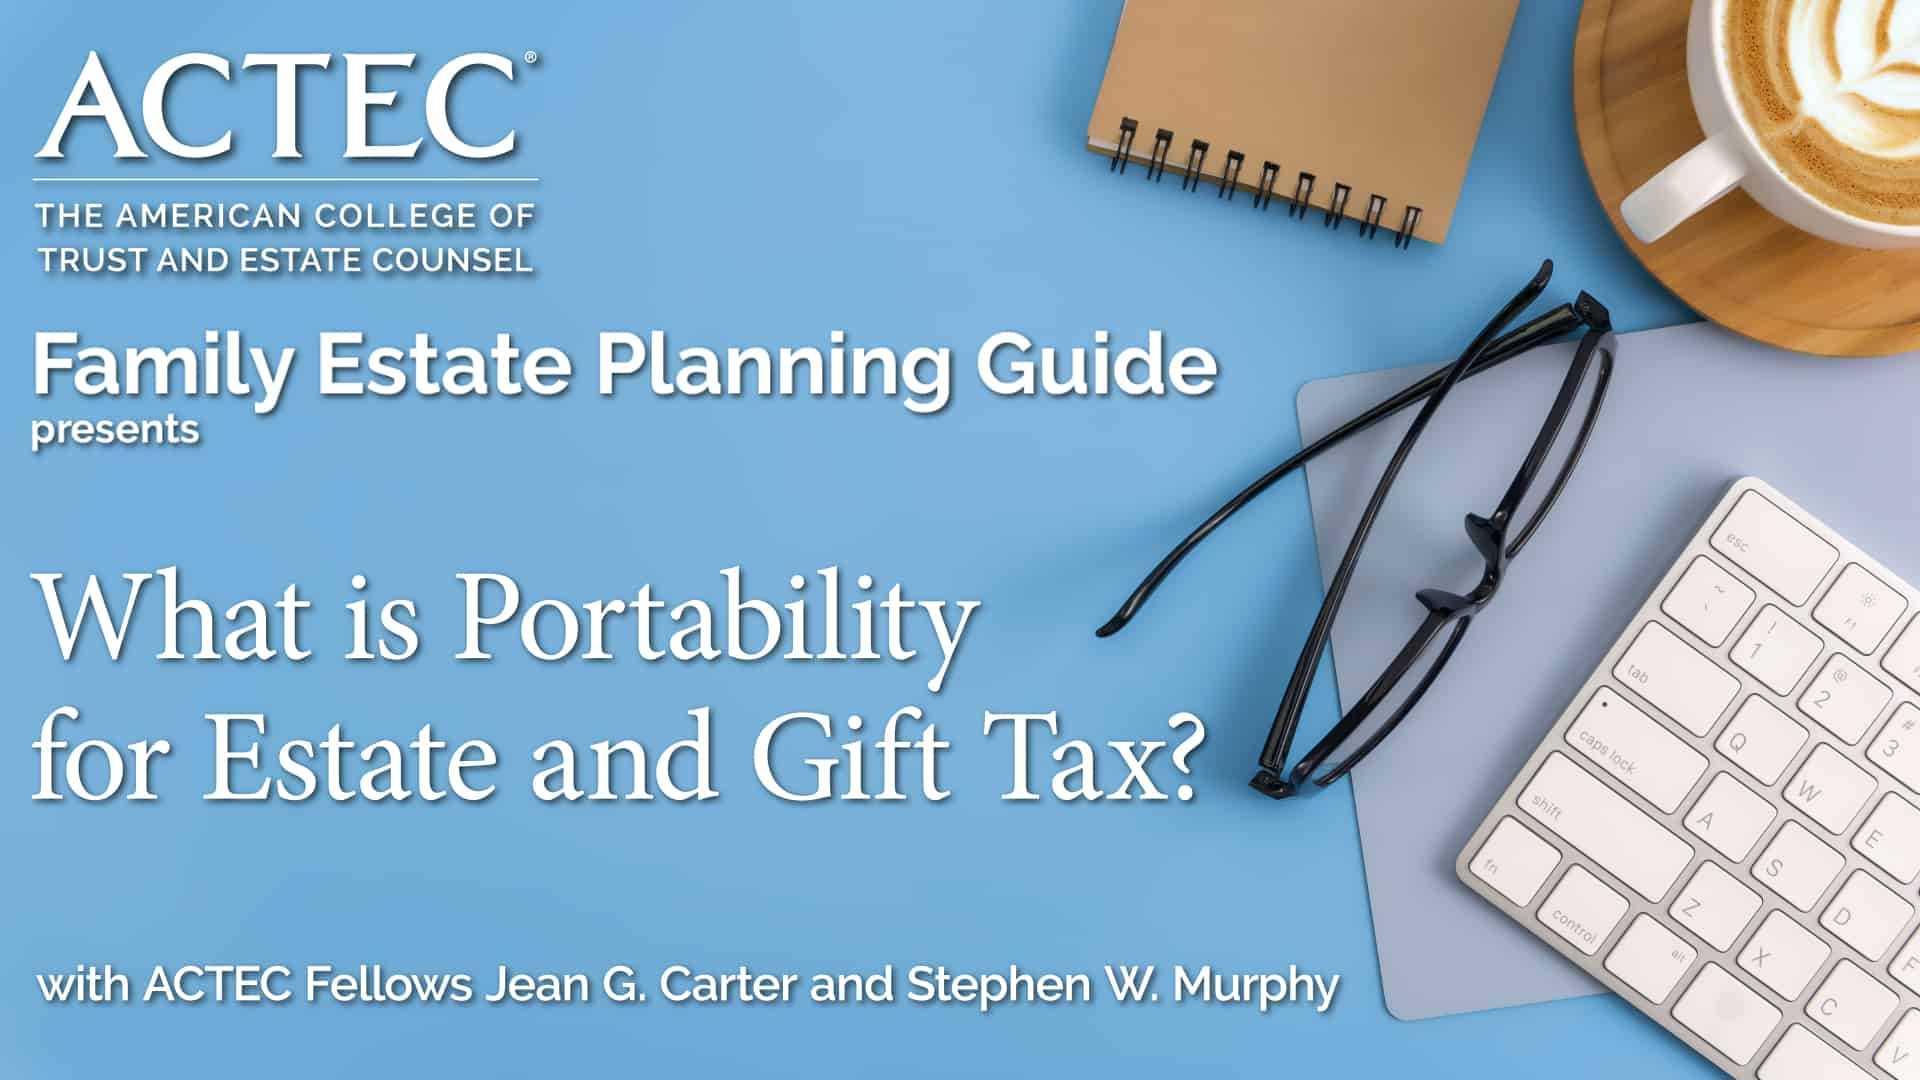 What is Portability for Estate and Gift Tax?